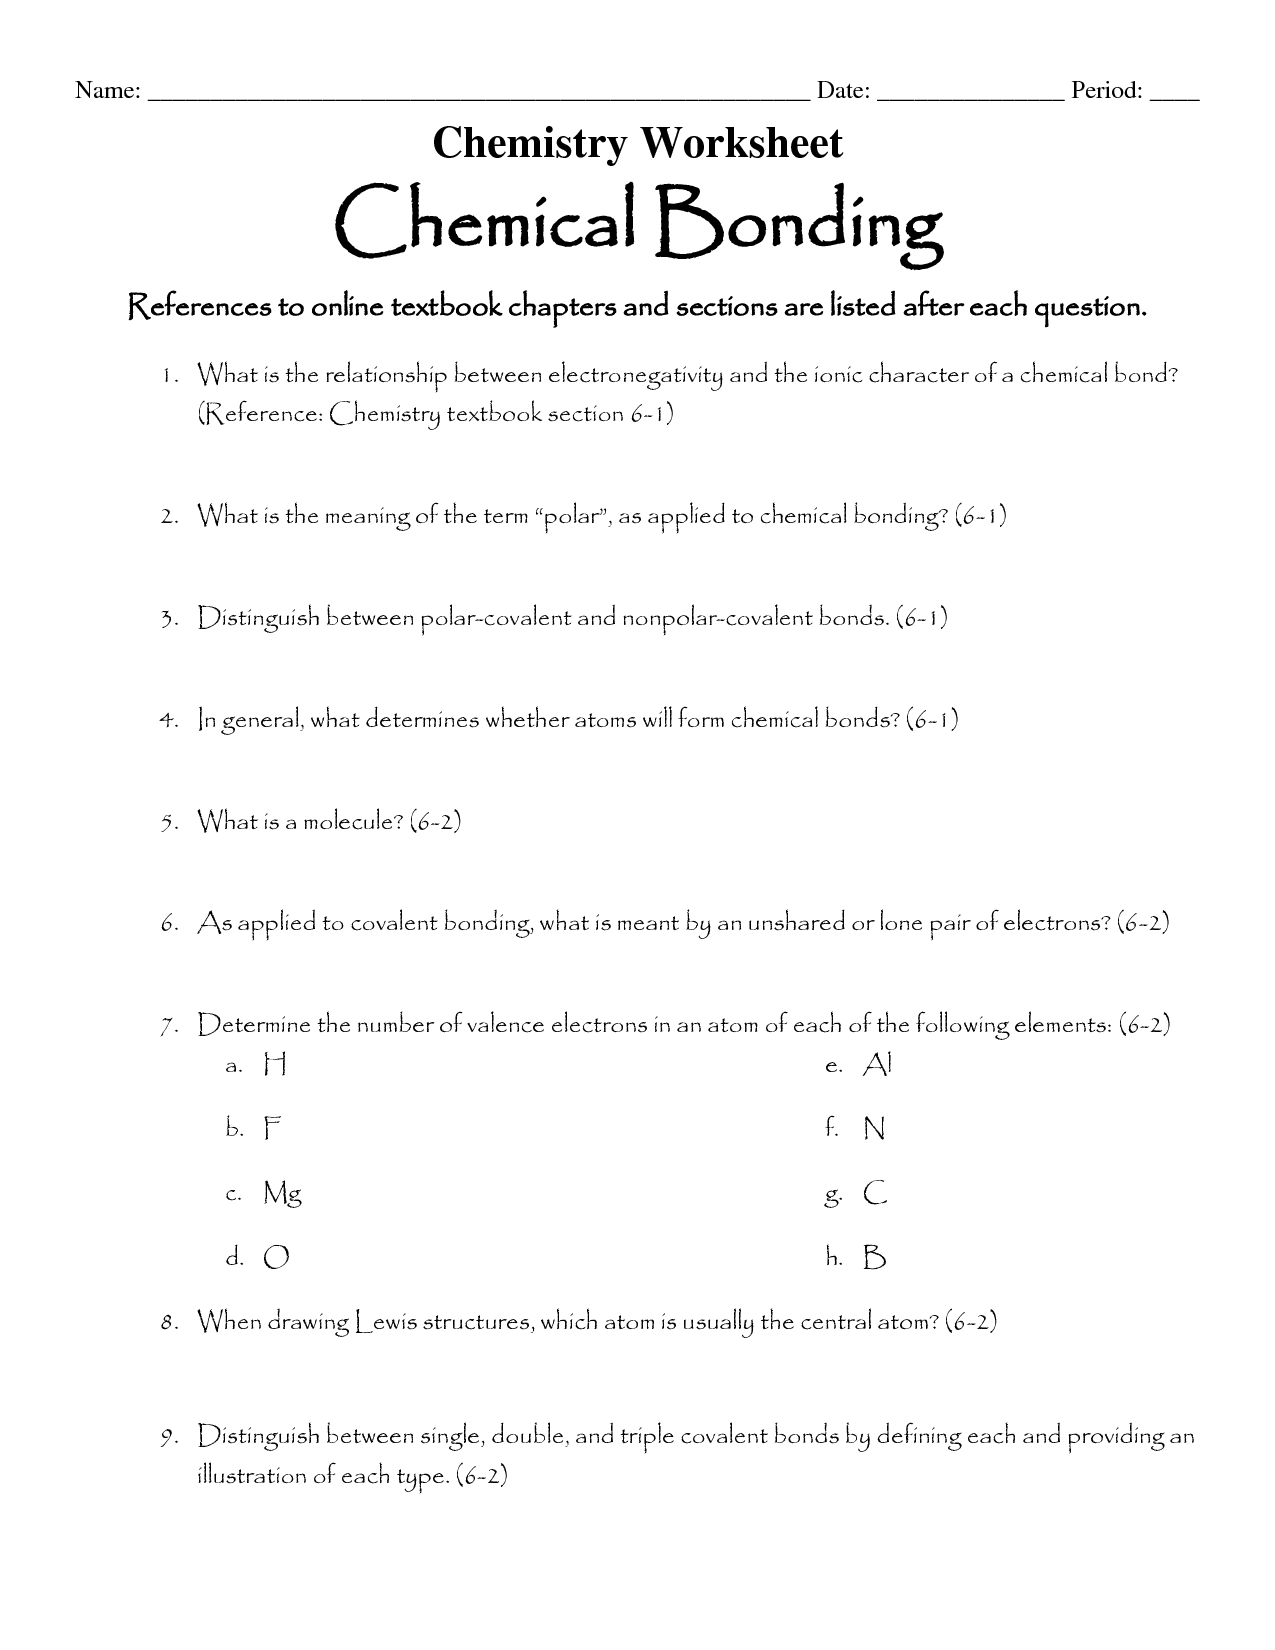 Types Of Chemical Bonds Worksheet Answer Key